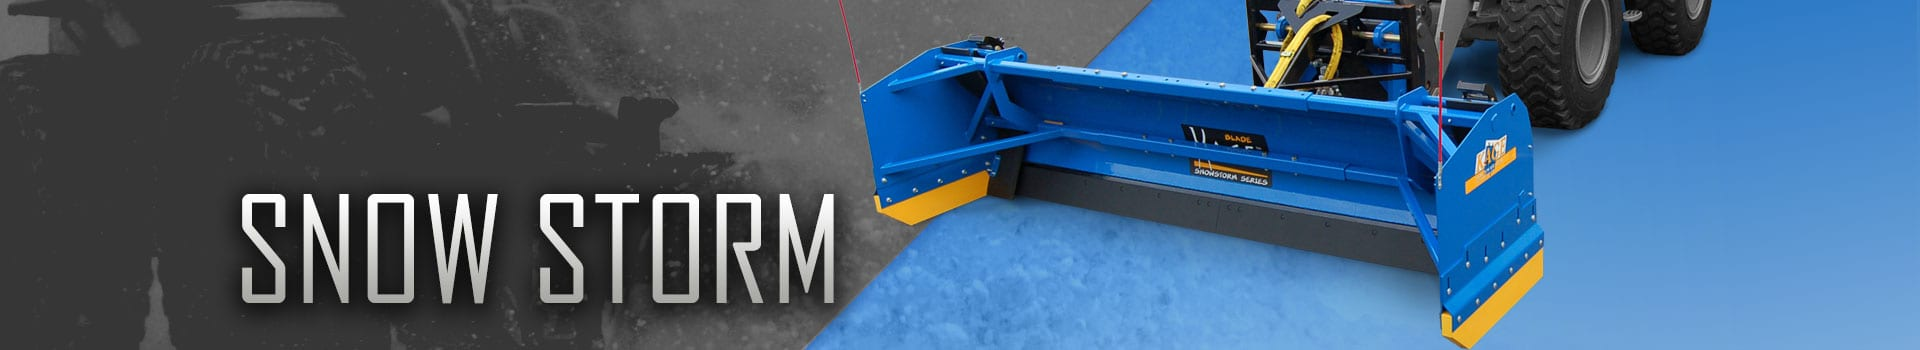 SNOWSTORM Front Loader Snow Plow by KAGE® Innovation